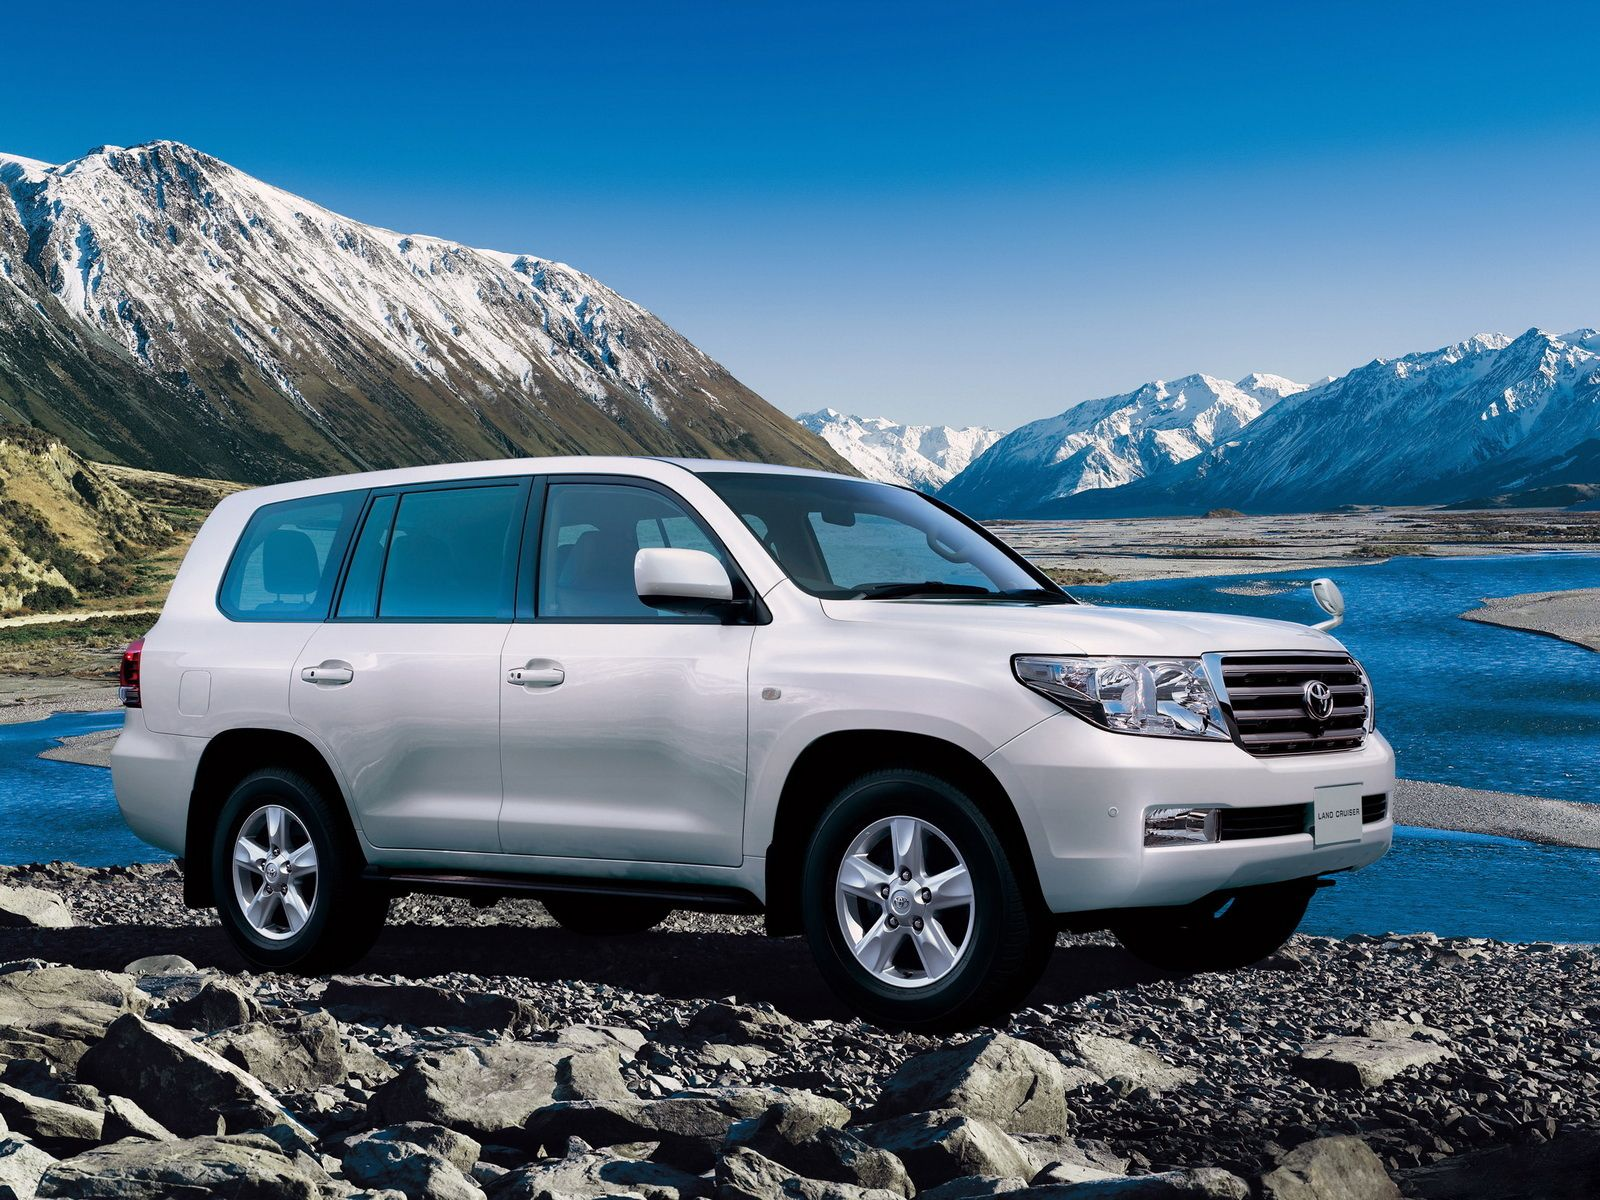 Toyota land cruiser 4wd suvs for sale get great prices on toyota land cruiser full